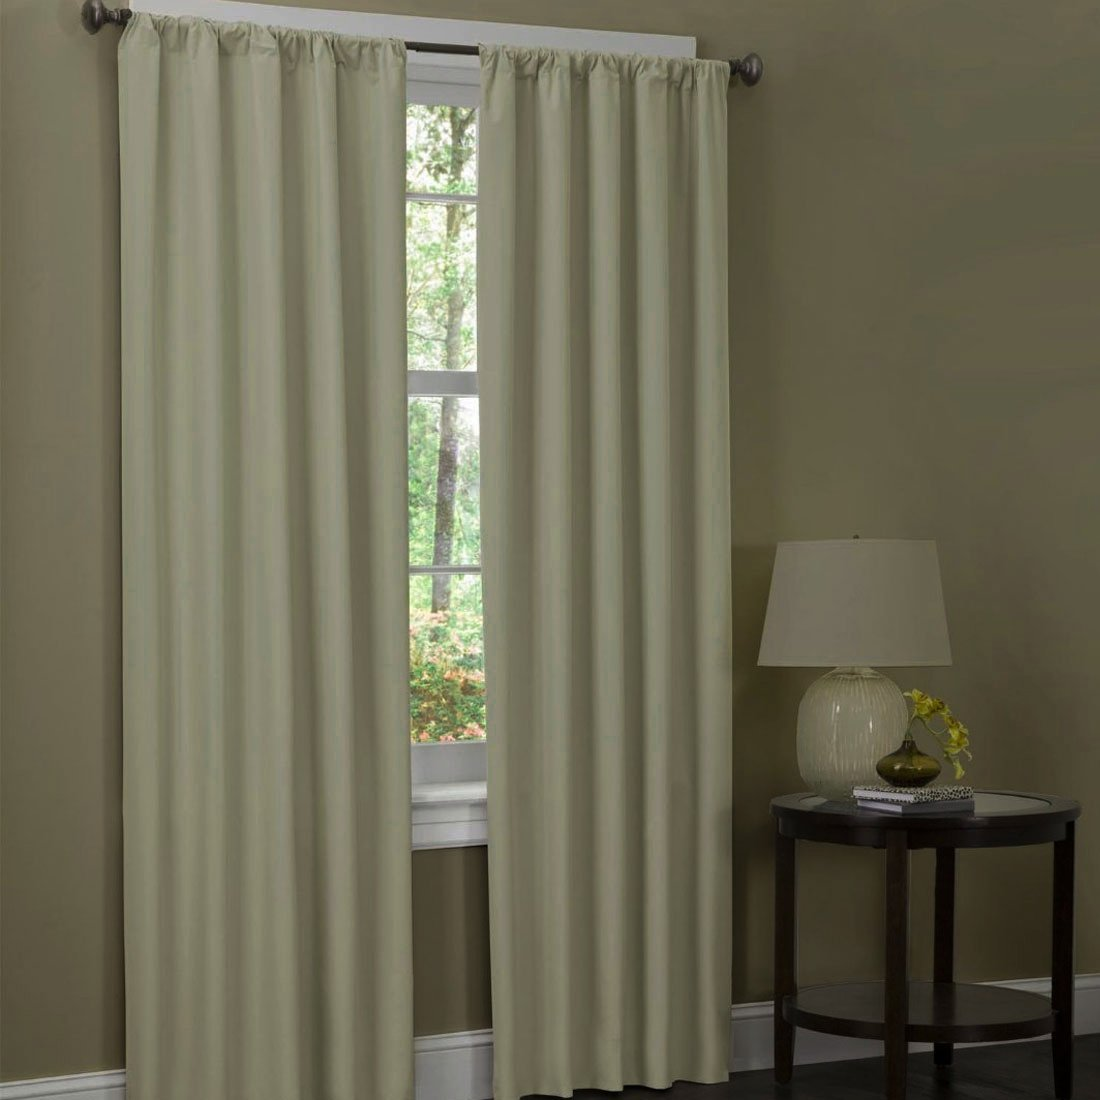 2 PANEL SOLID LINED THERMAL INSULATED BLACKOUT ROD POCKET